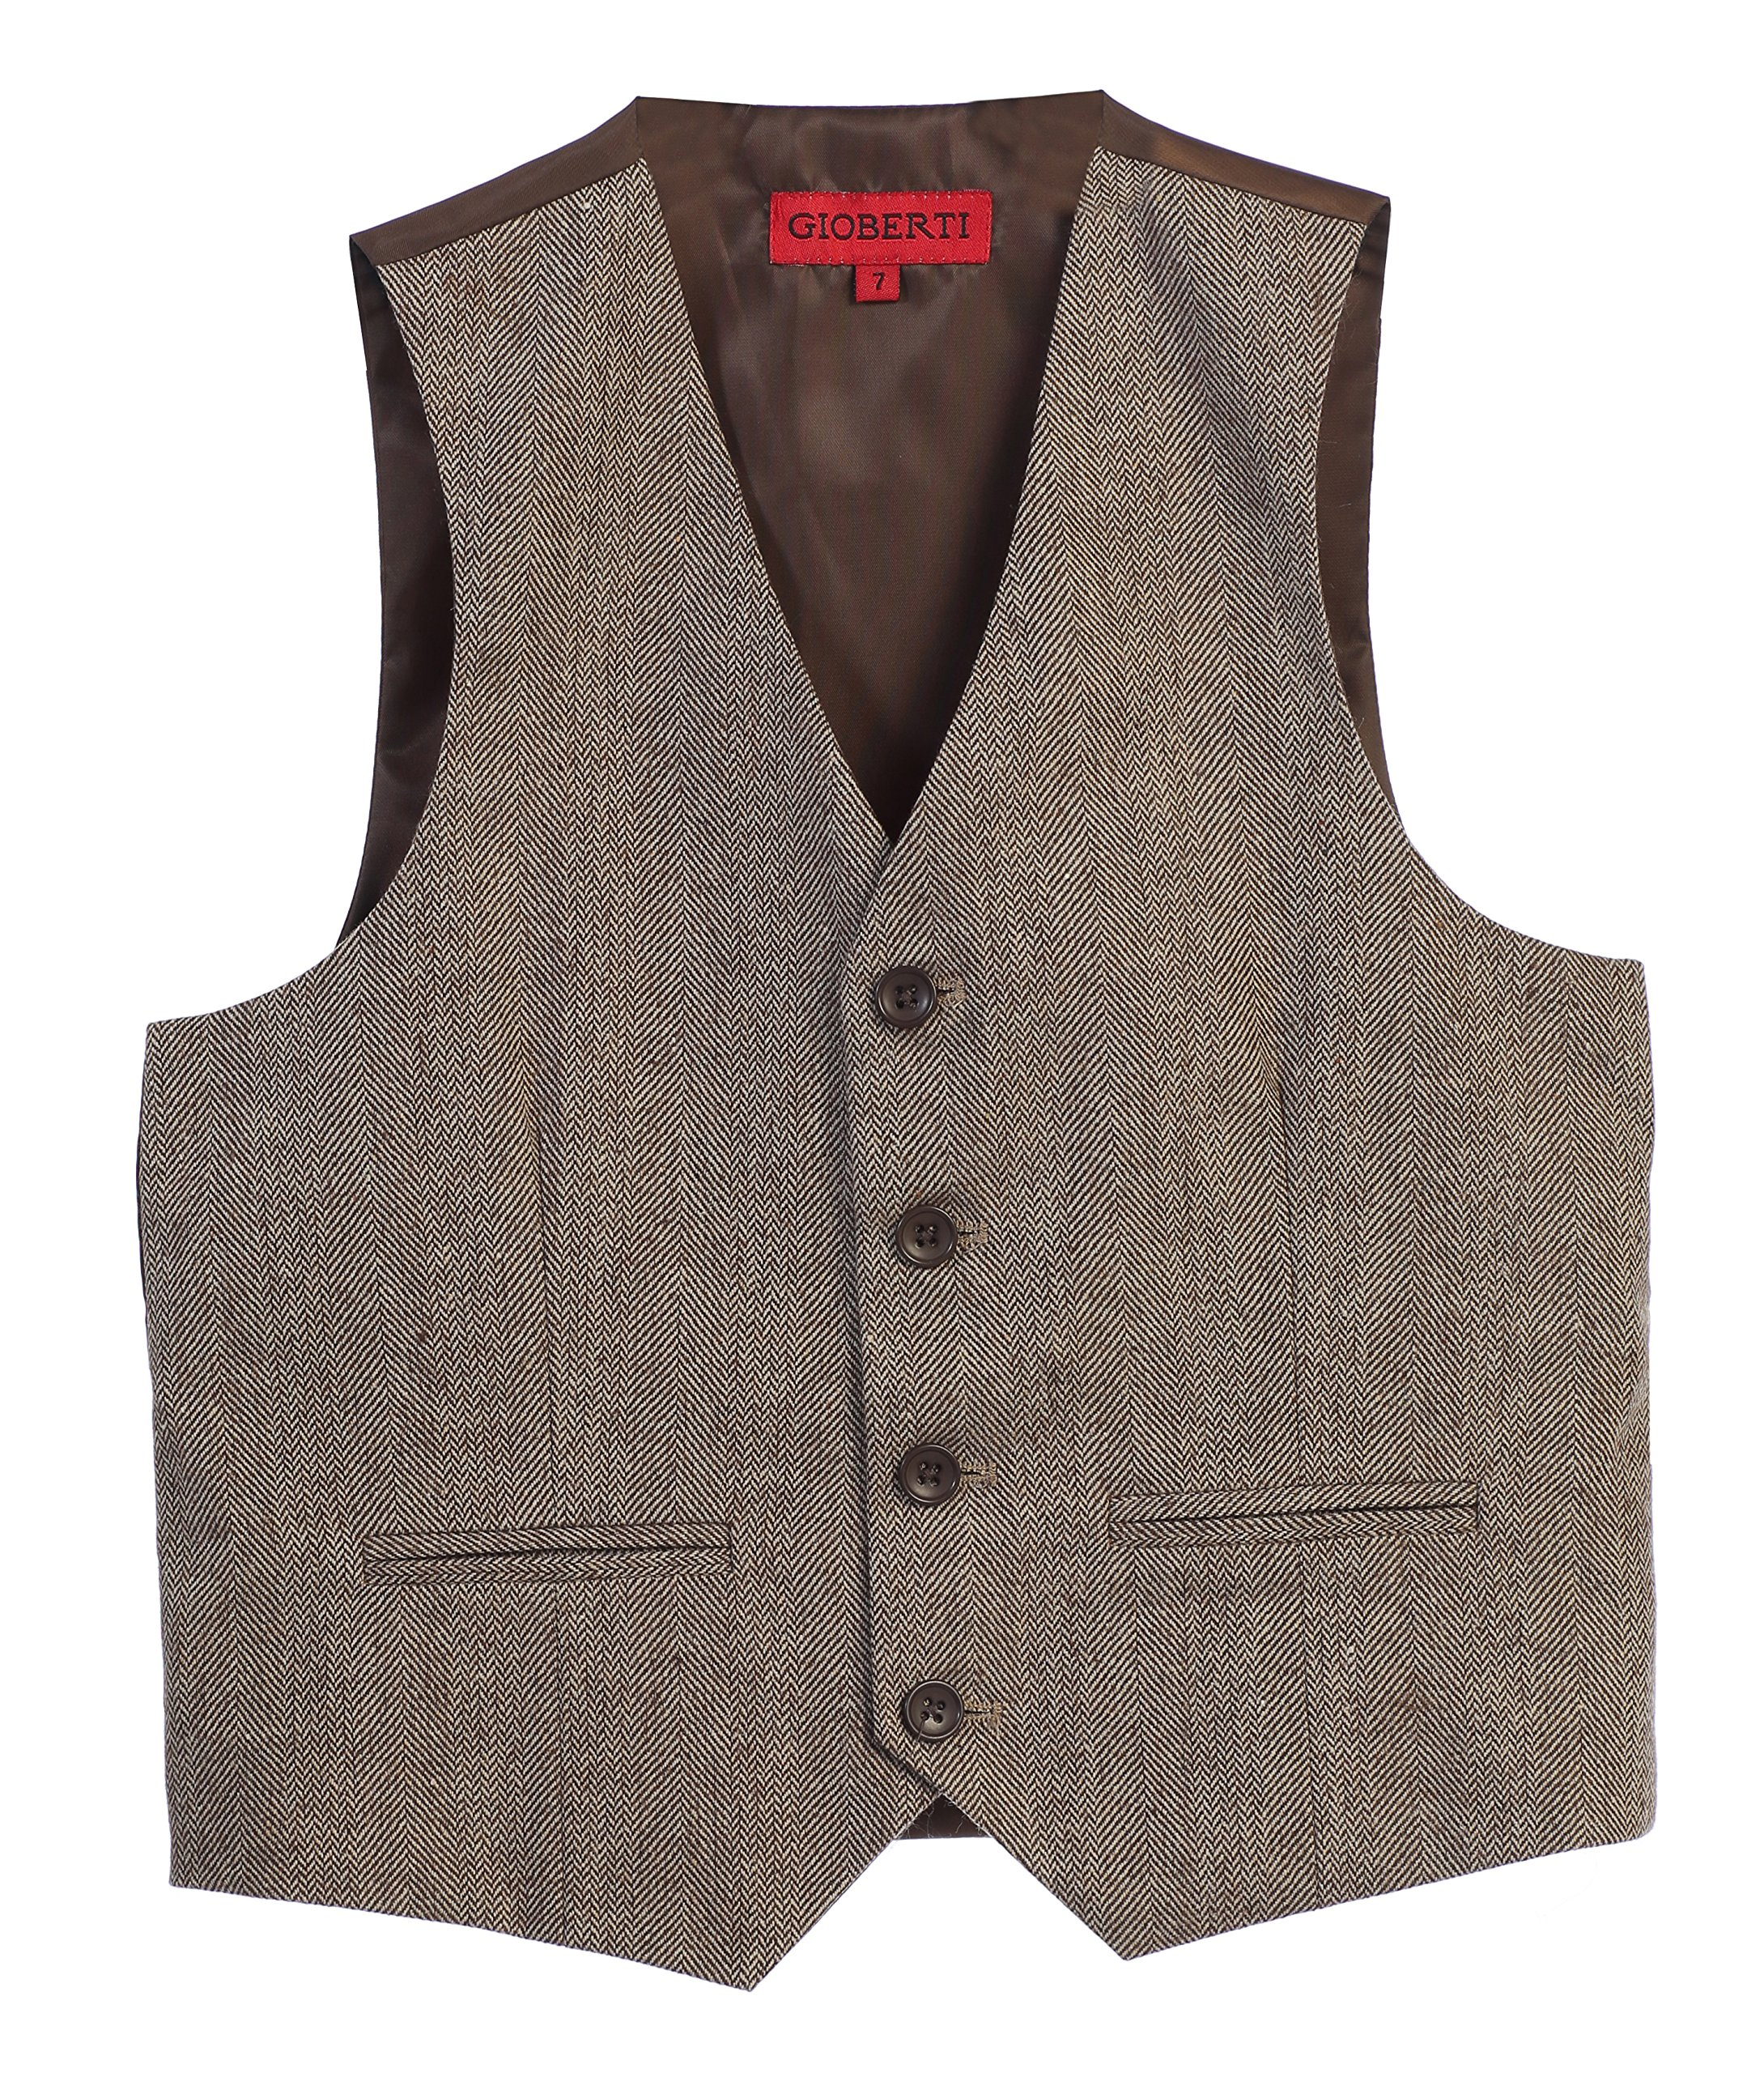 Gioberti Boy's Tweed Plaid Formal Suit Vest, Herringbone Tan, Size 3T